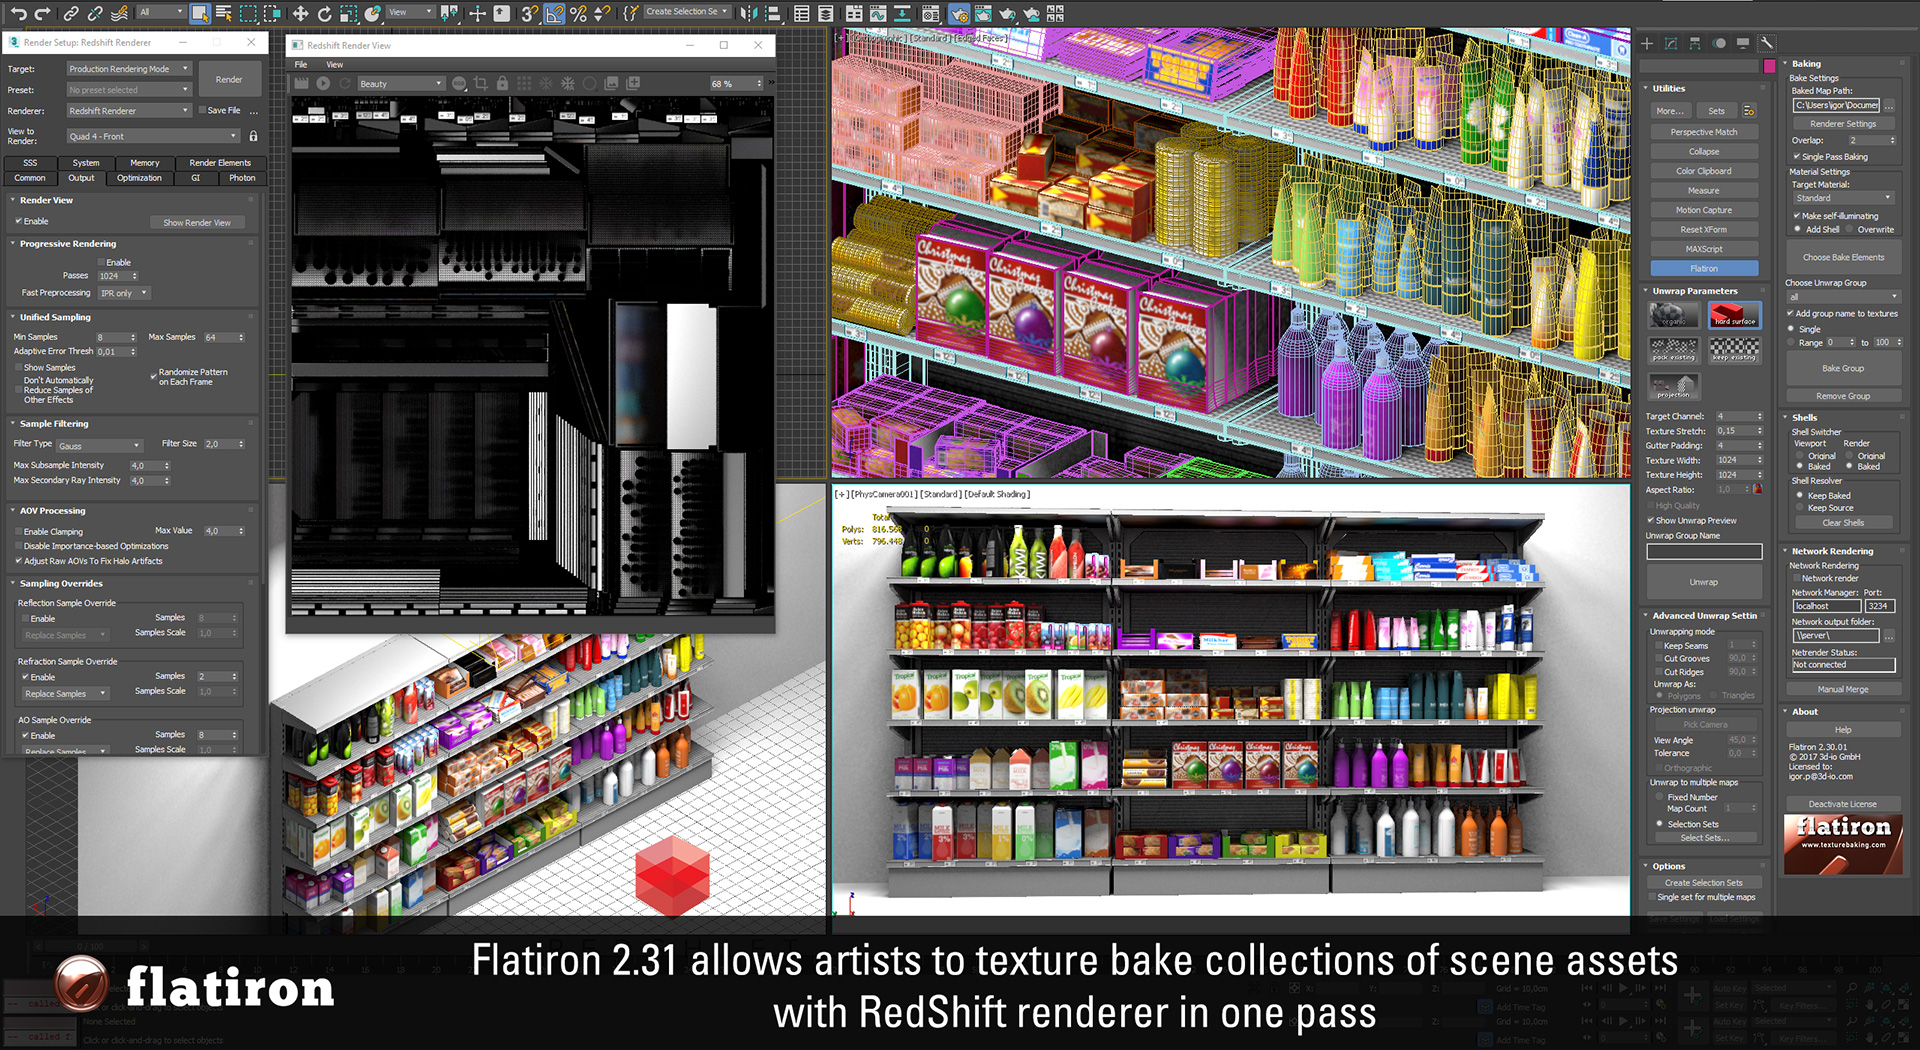 FlatIron 2.31 with Redsift 3d texture baking support